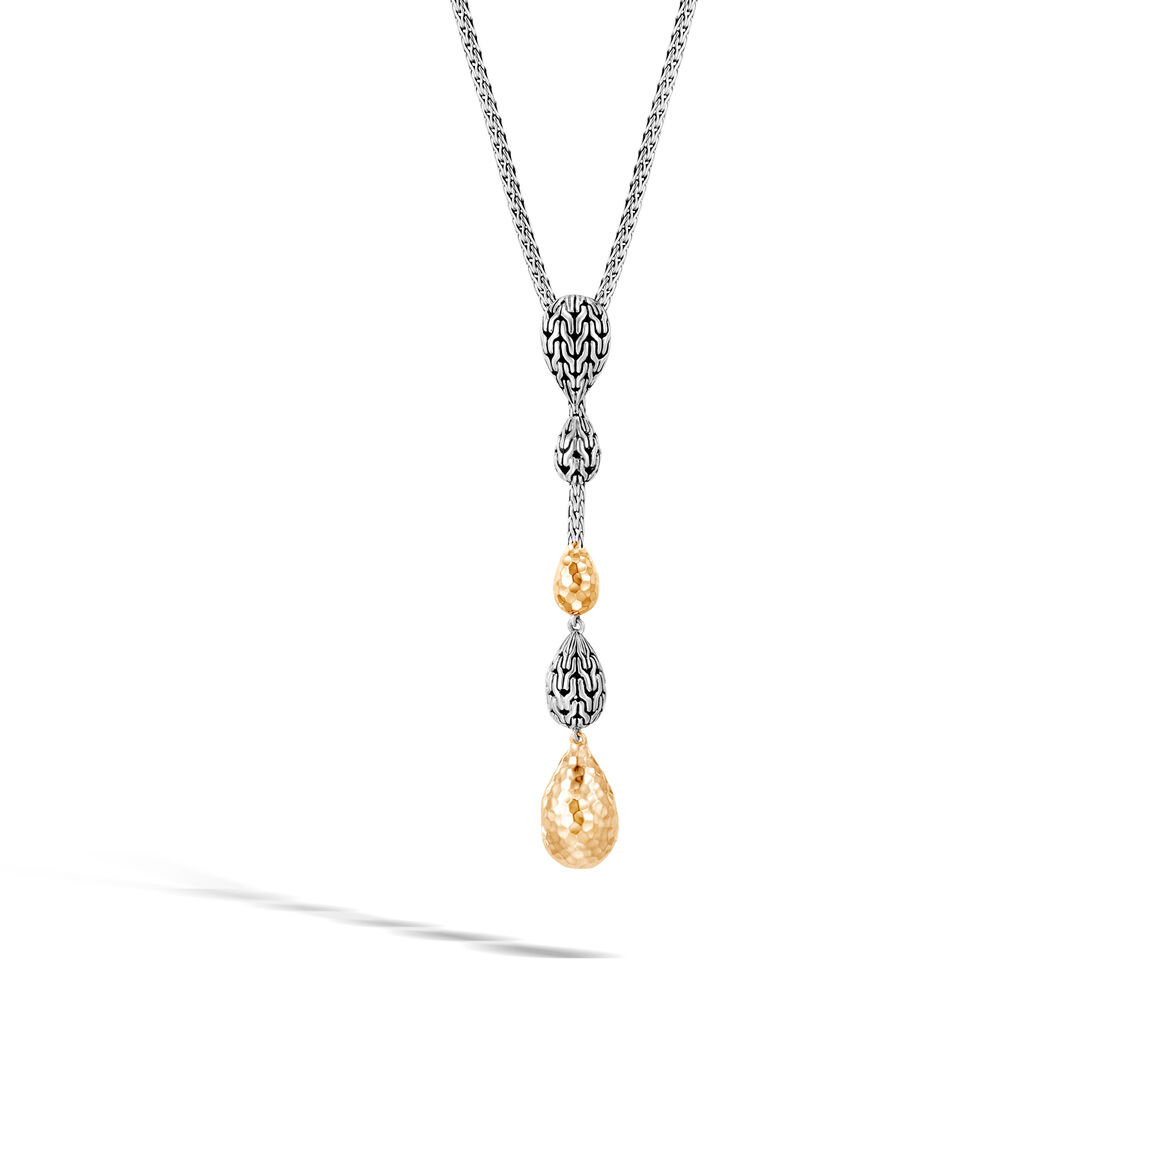 Classic Chain Y Necklace in Silver and Hammered 18K Gold